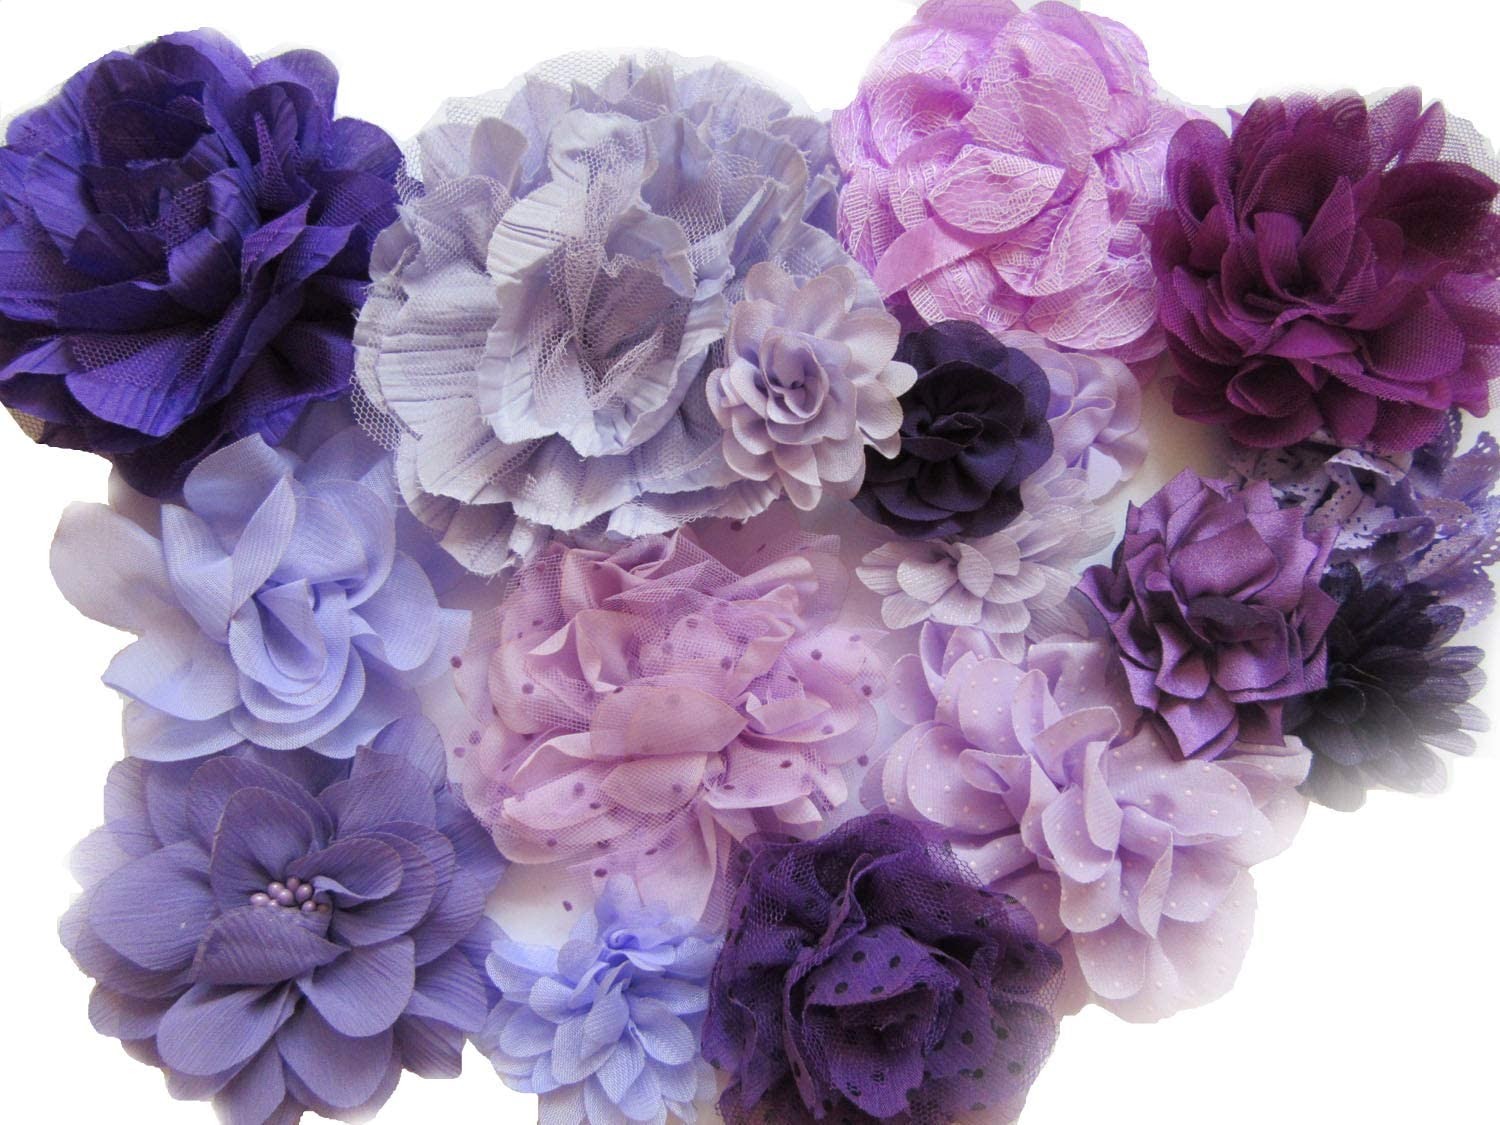 Lavender Fields One Size Fits All Soft Nylon Headband Set Purple Chiffon Flower and White Satin Flower w Shades of Purple Roses Crown